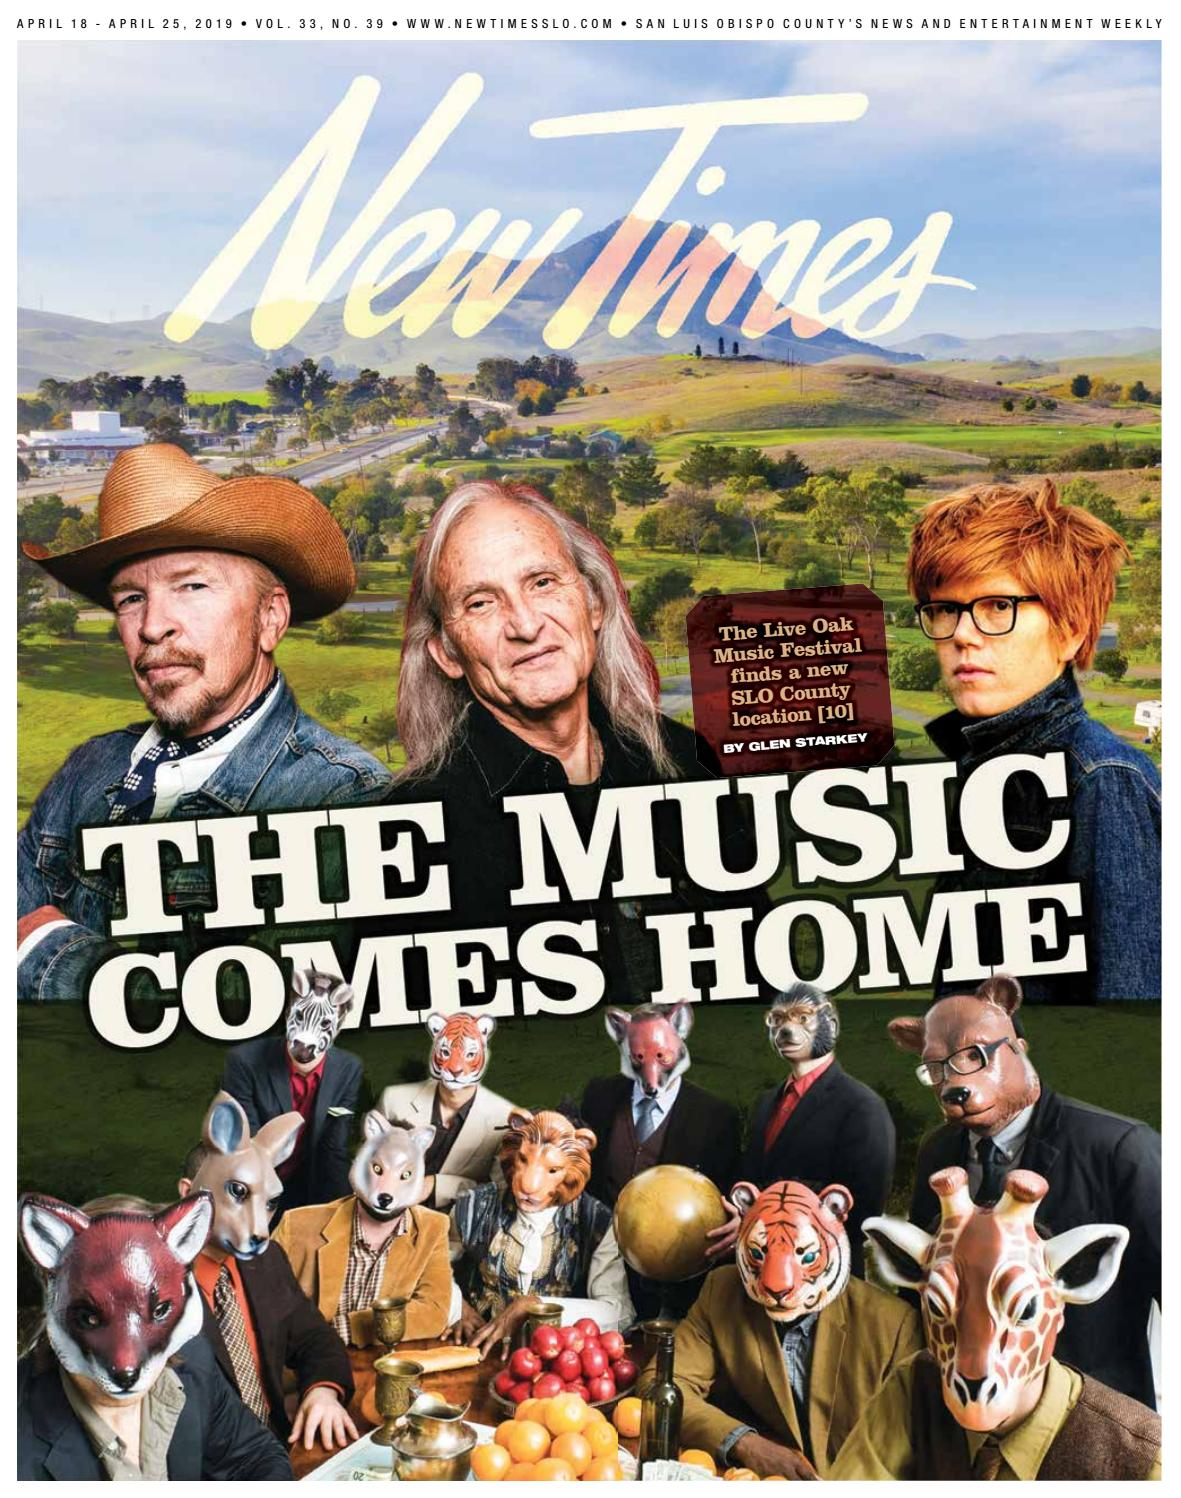 A Place To Call Home Complete Series Supernatural Dvd Seasons 1 12 Set Pristine Sales New Times, April 18, 2019 By New Times, San Luis Obispo - Issuu